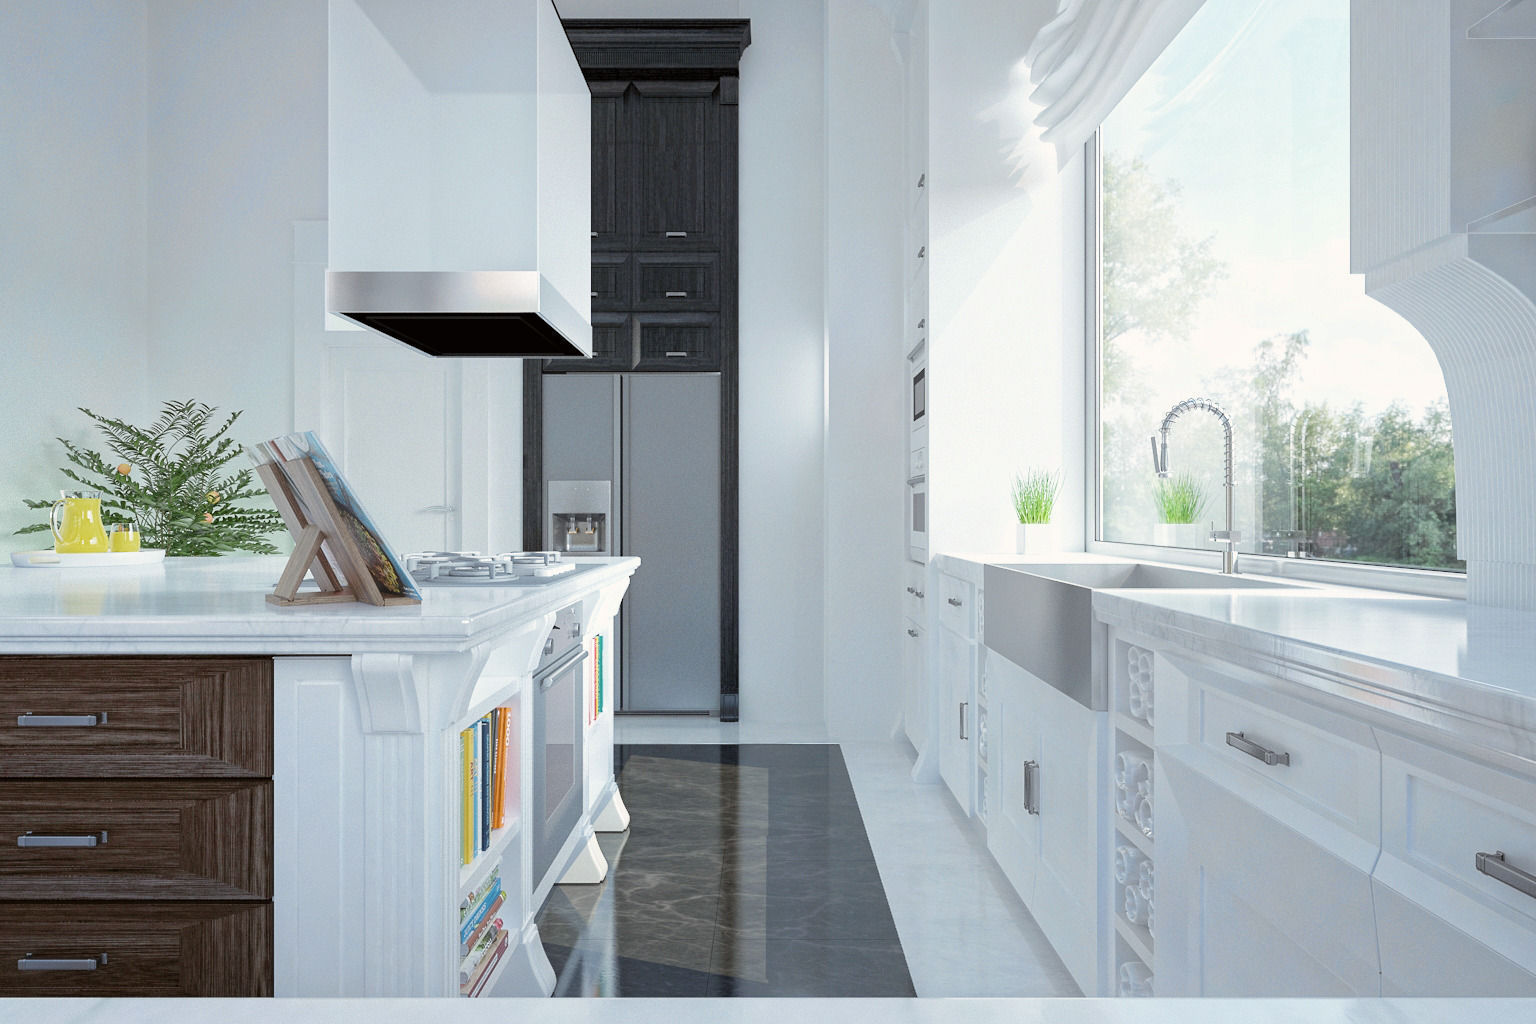 Royal kitchen design interior 3D model MAX